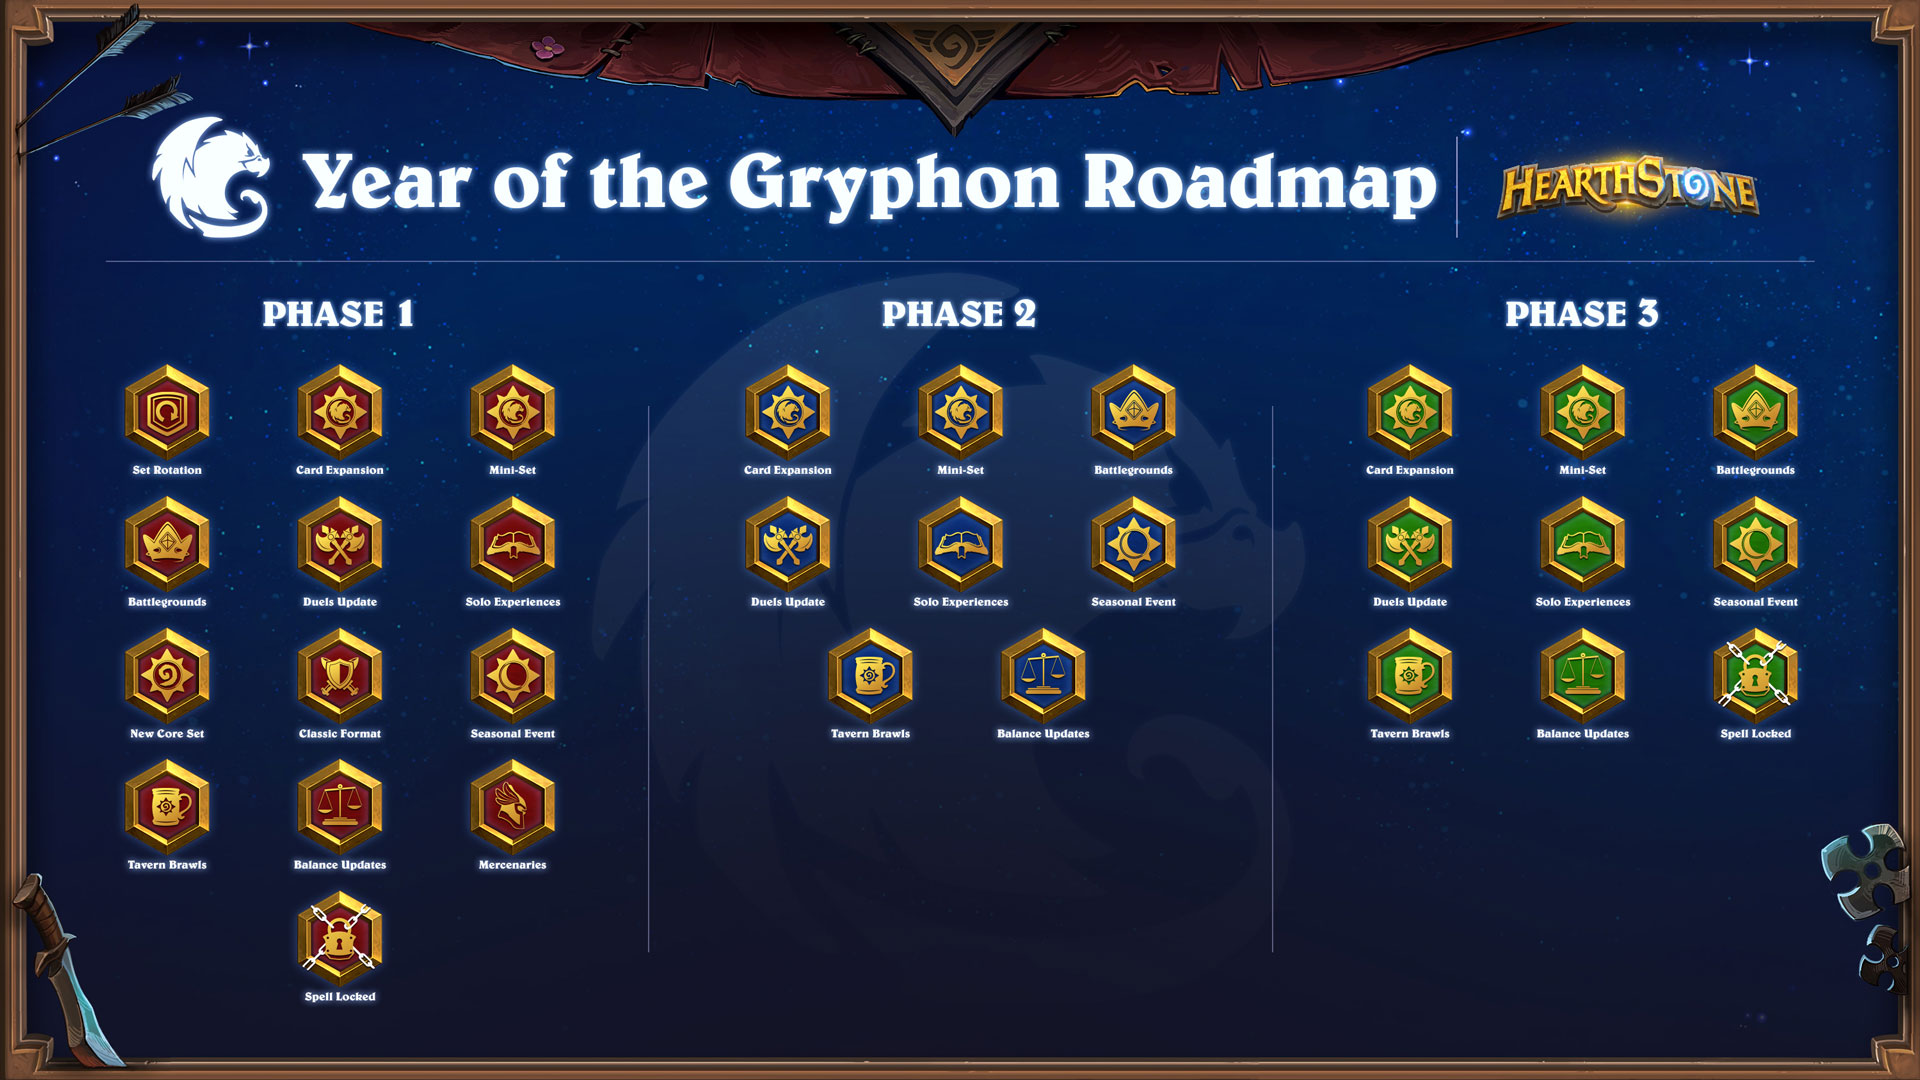 roadmap of updates you can expect for the year broken up into 3 phases - one for each expansion